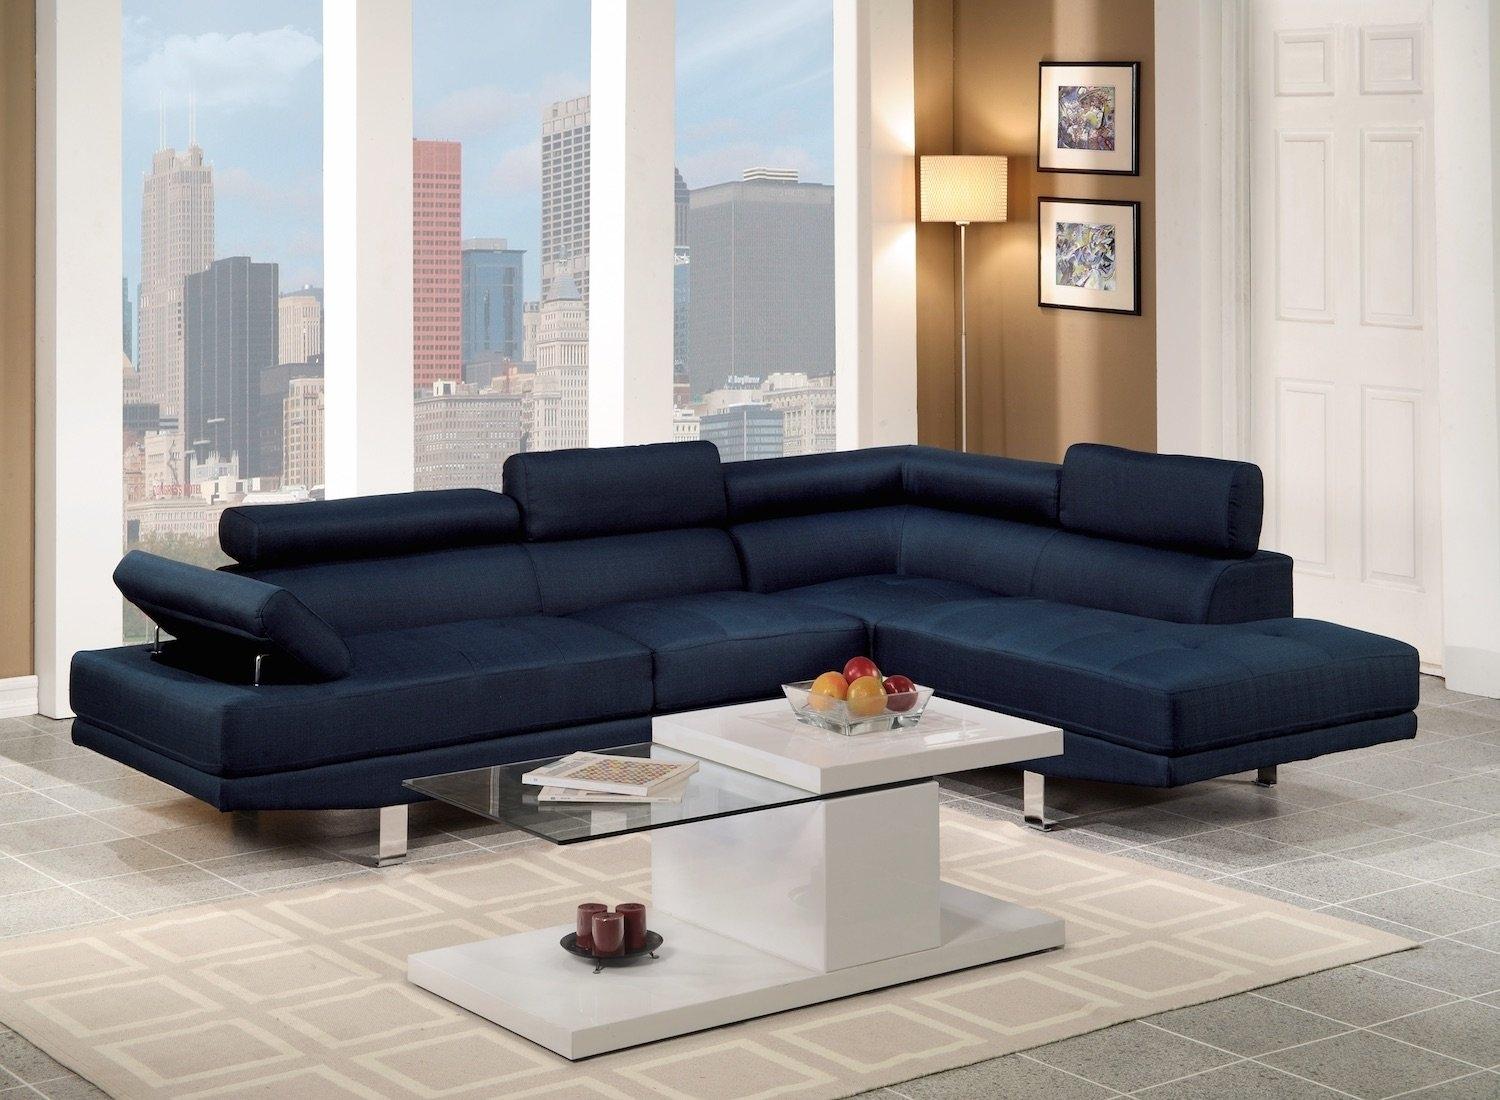 Navy Blue Sectional Sofa | Wayfair In Adjustable Sectional Sofas With Queen Bed (Image 6 of 10)